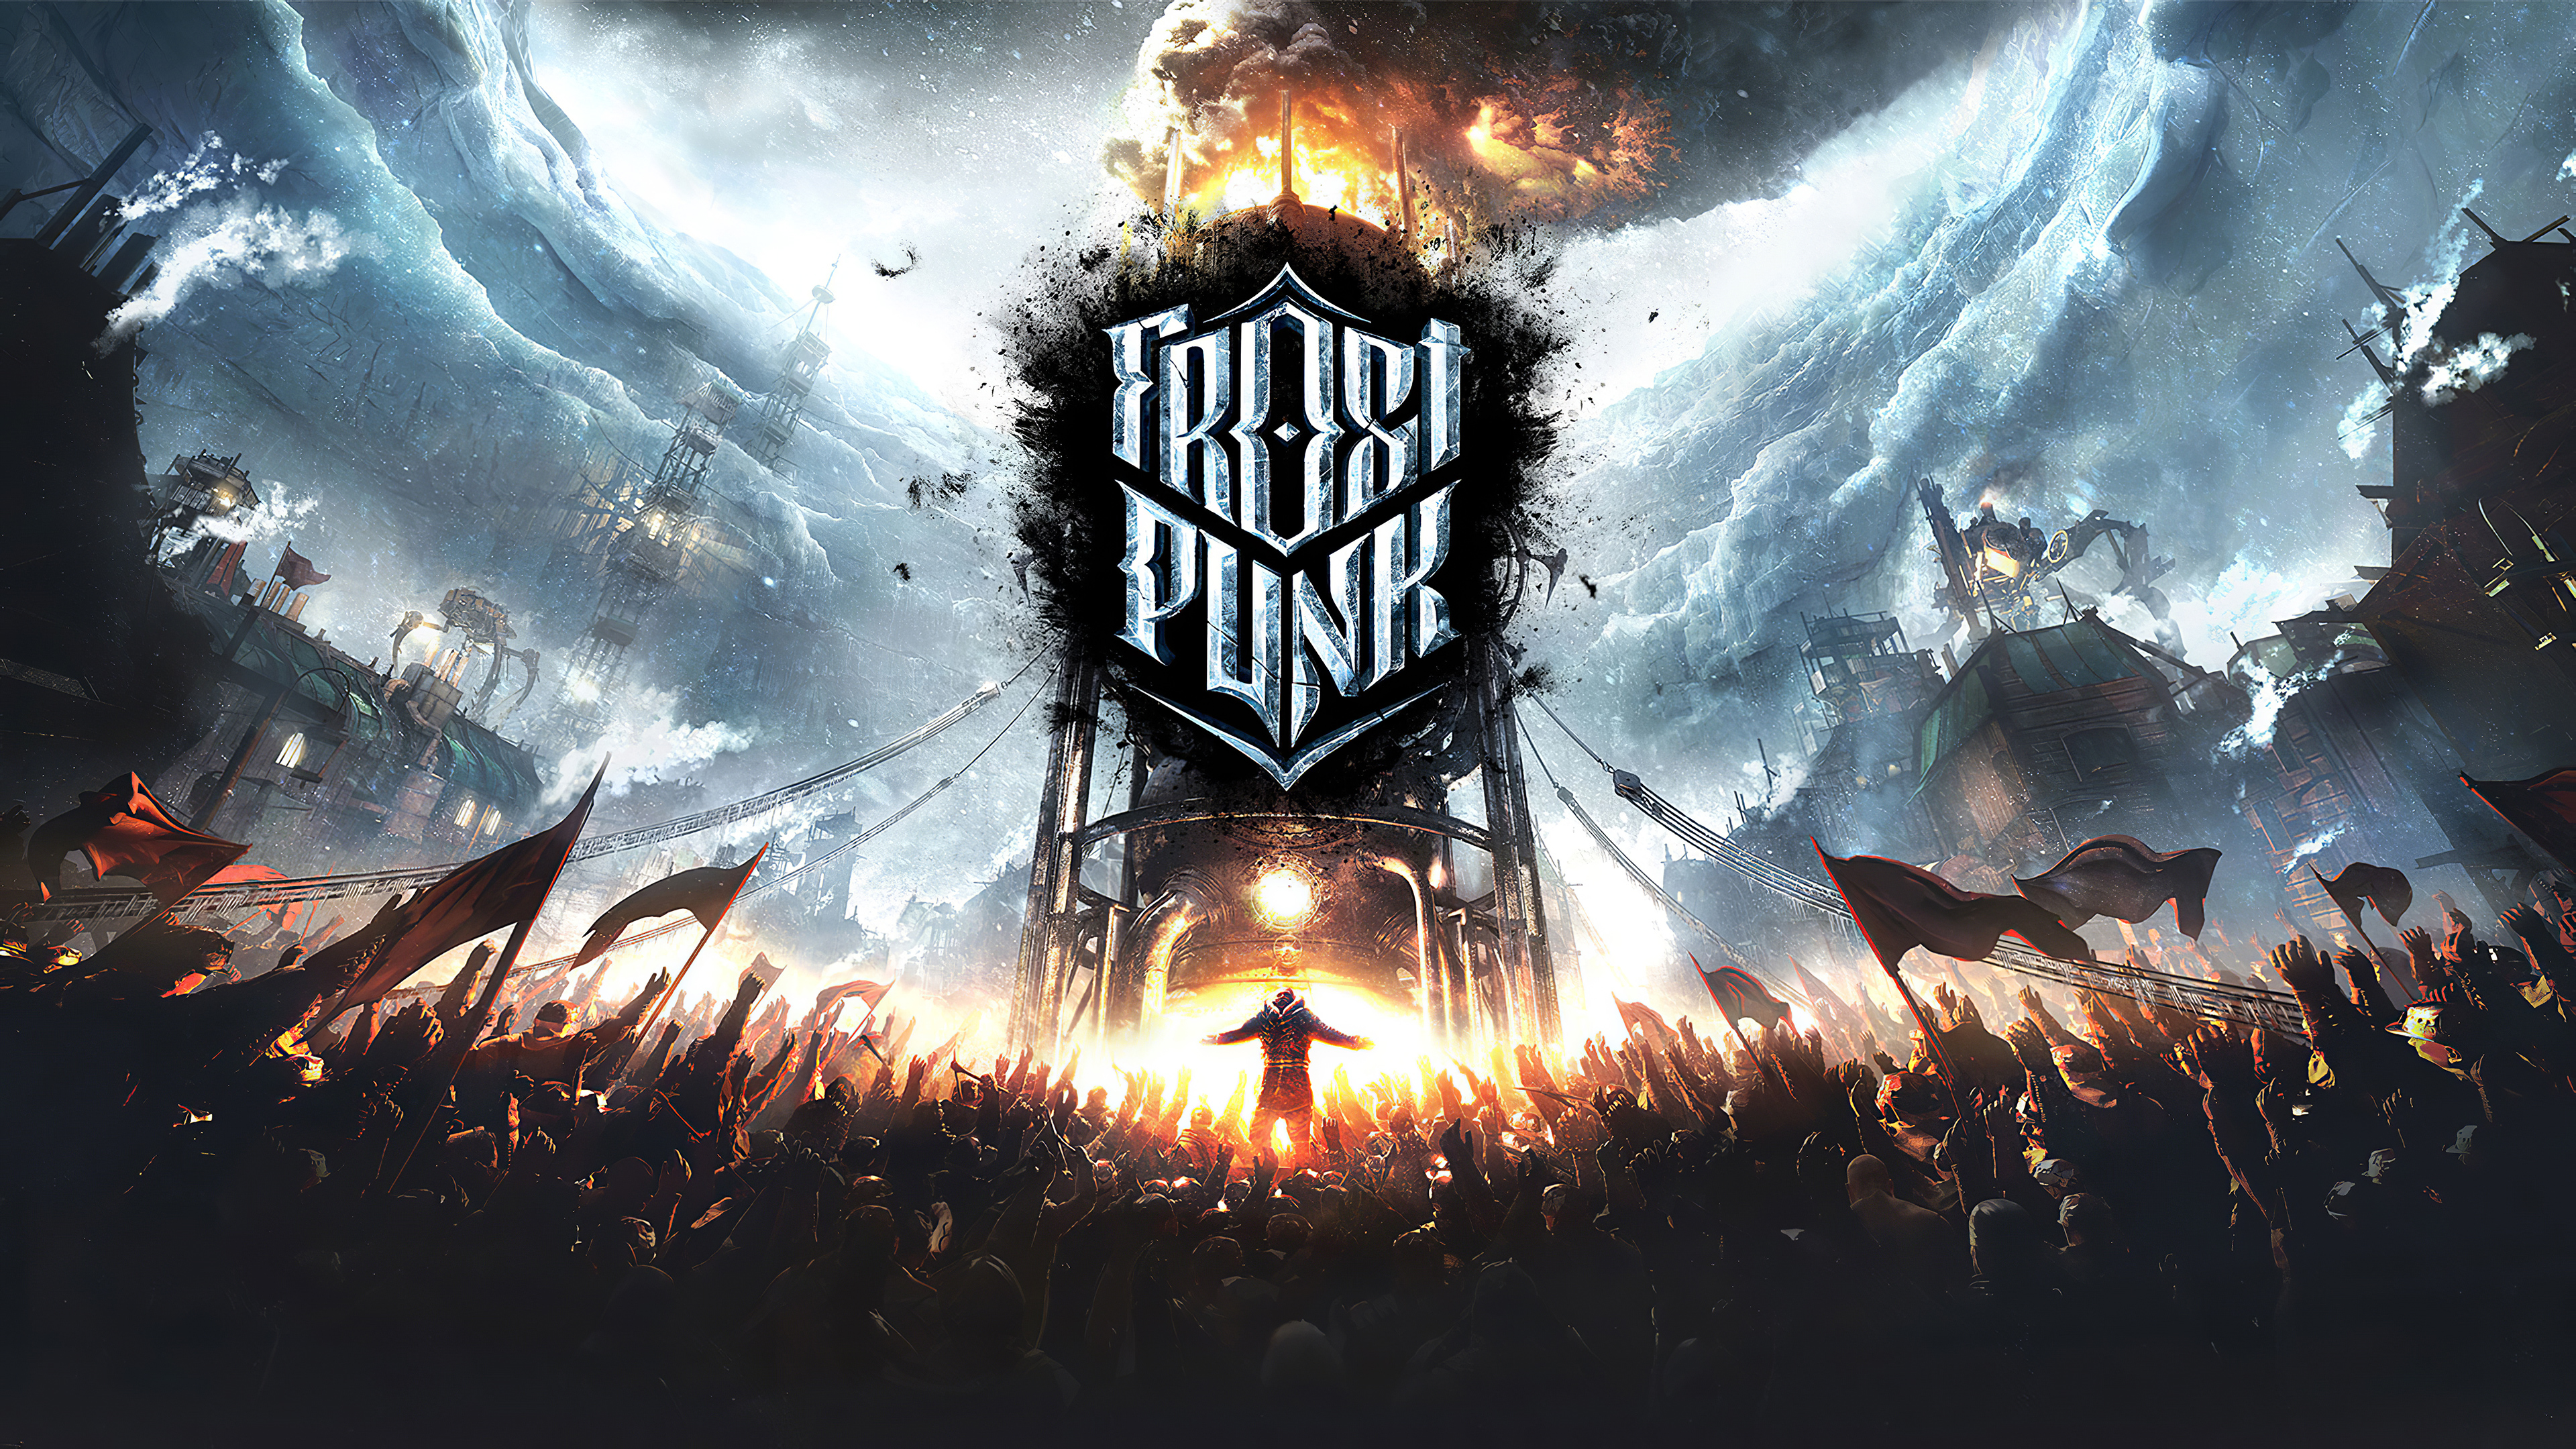 frost punk 2019 1572370046 - Frost Punk 2019 - hd-wallpapers, games wallpapers, frostpunk wallpapers, 4k-wallpapers, 2019 games wallpapers